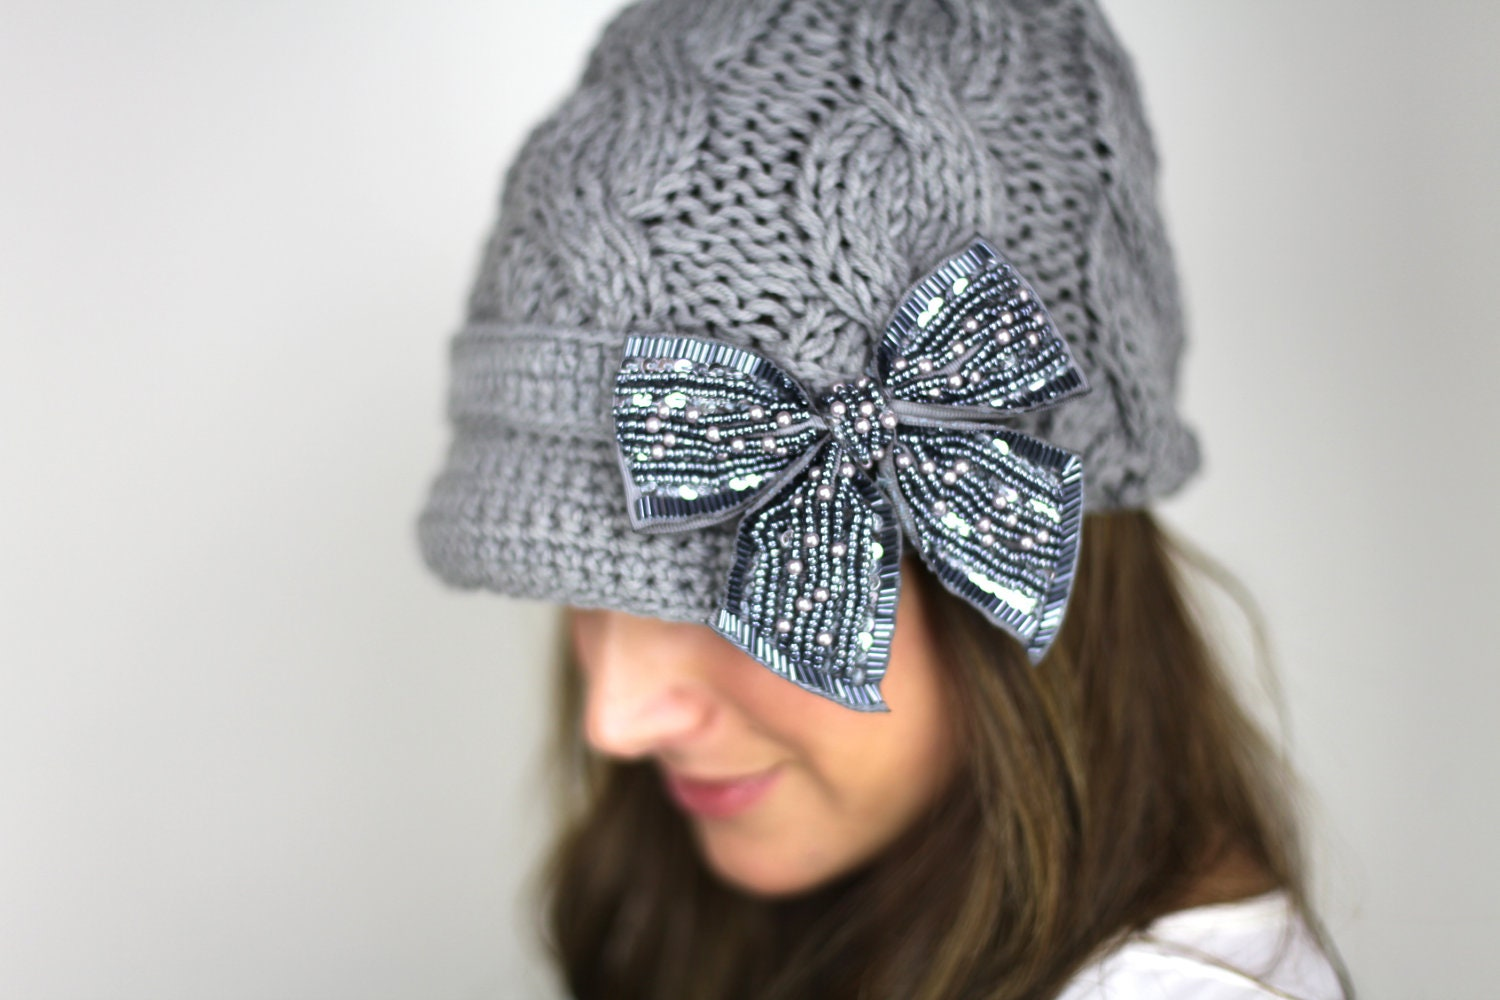 knitted hat, gray knitted bow hat, brown hat, knit hat, gray bow hat, winter hat, silver bow - gertiebaxter